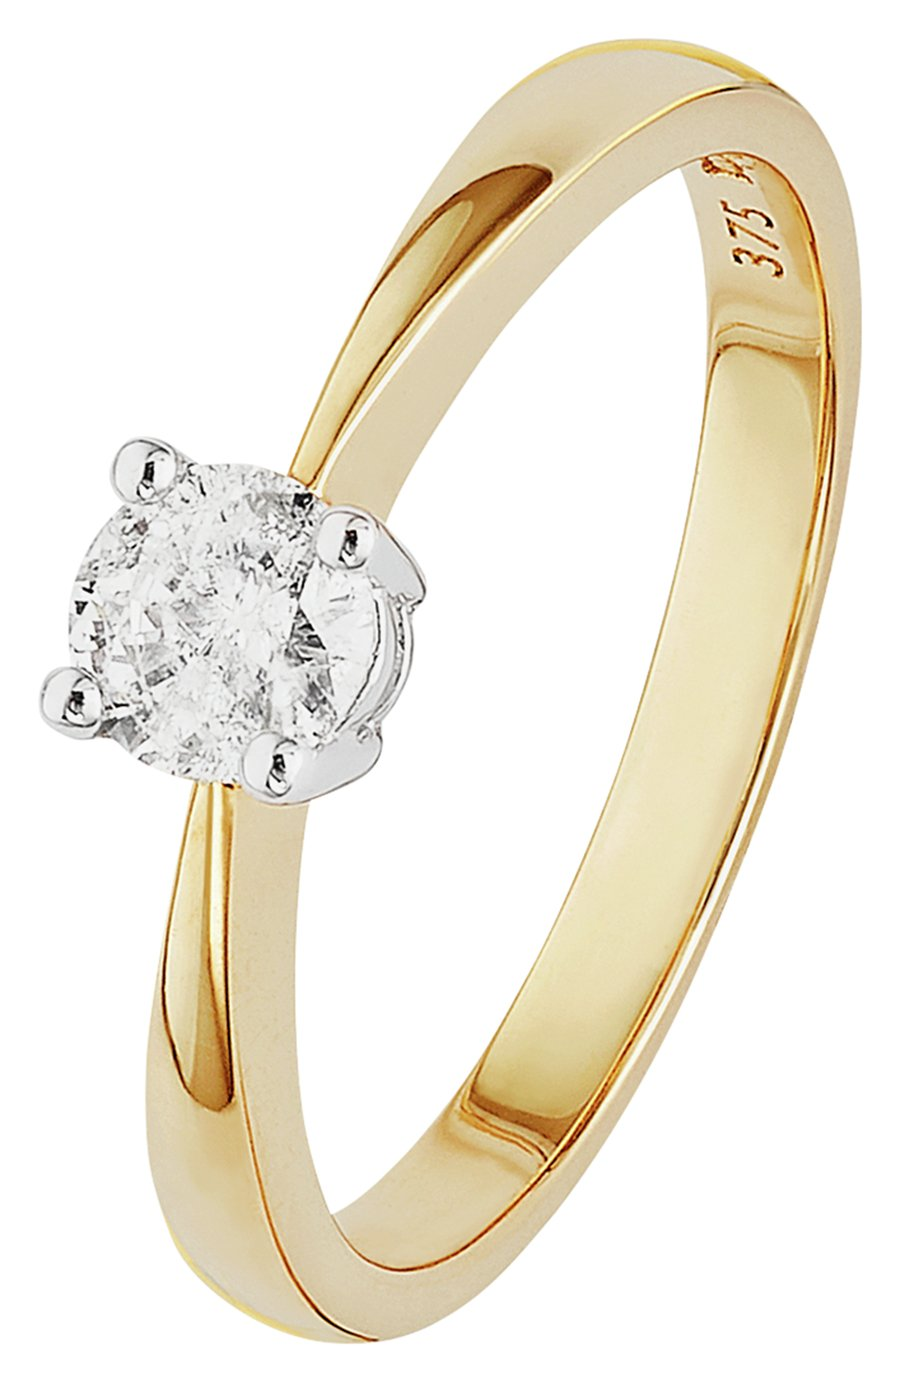 size N 9ct Yellow Gold 0.33ct Solitaire Engagement Ring